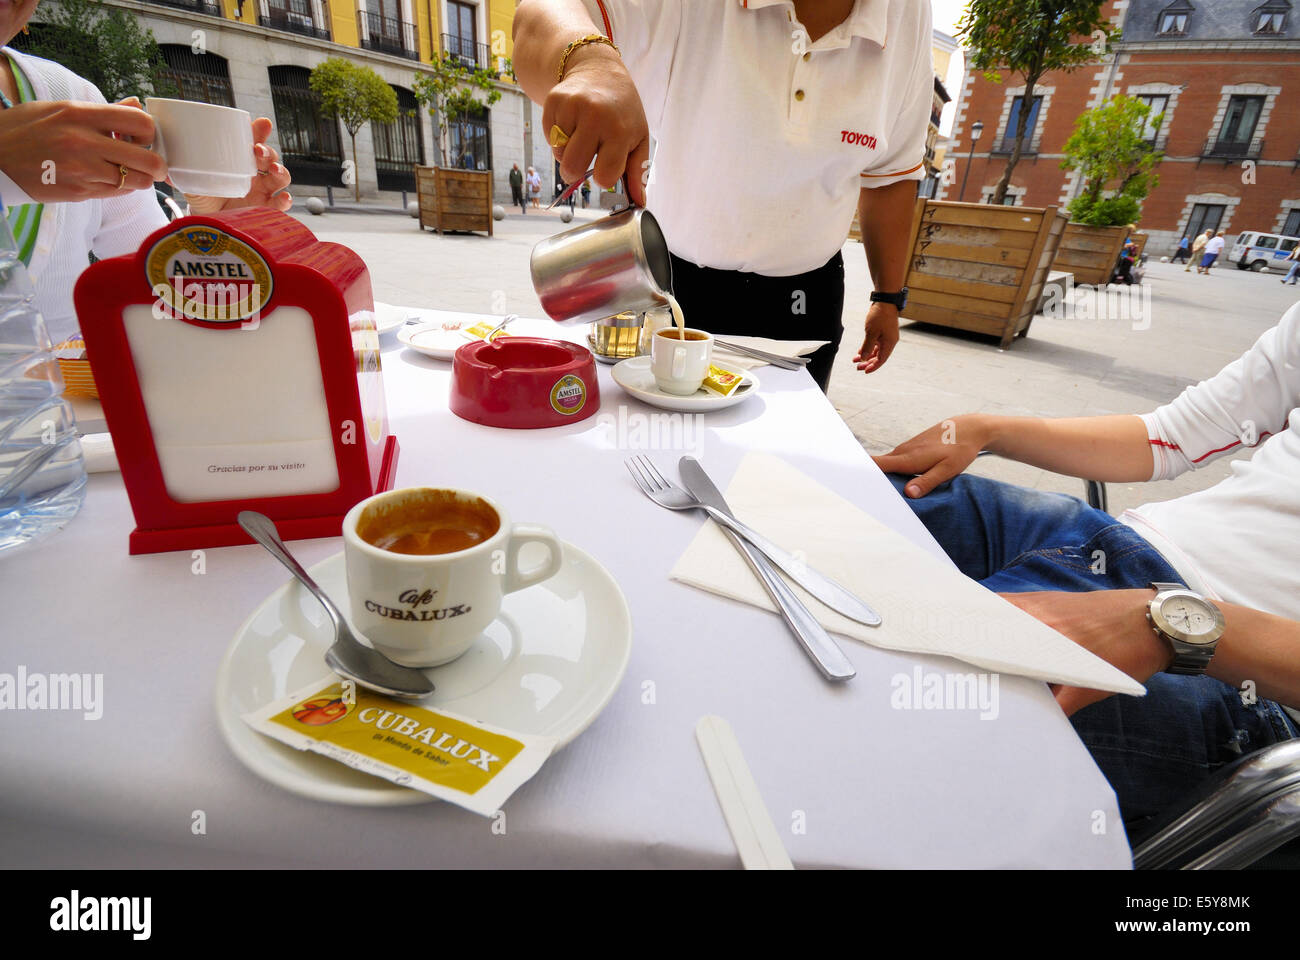 café, scene with different brands or logotypes, Madrid, Spain Stock Photo